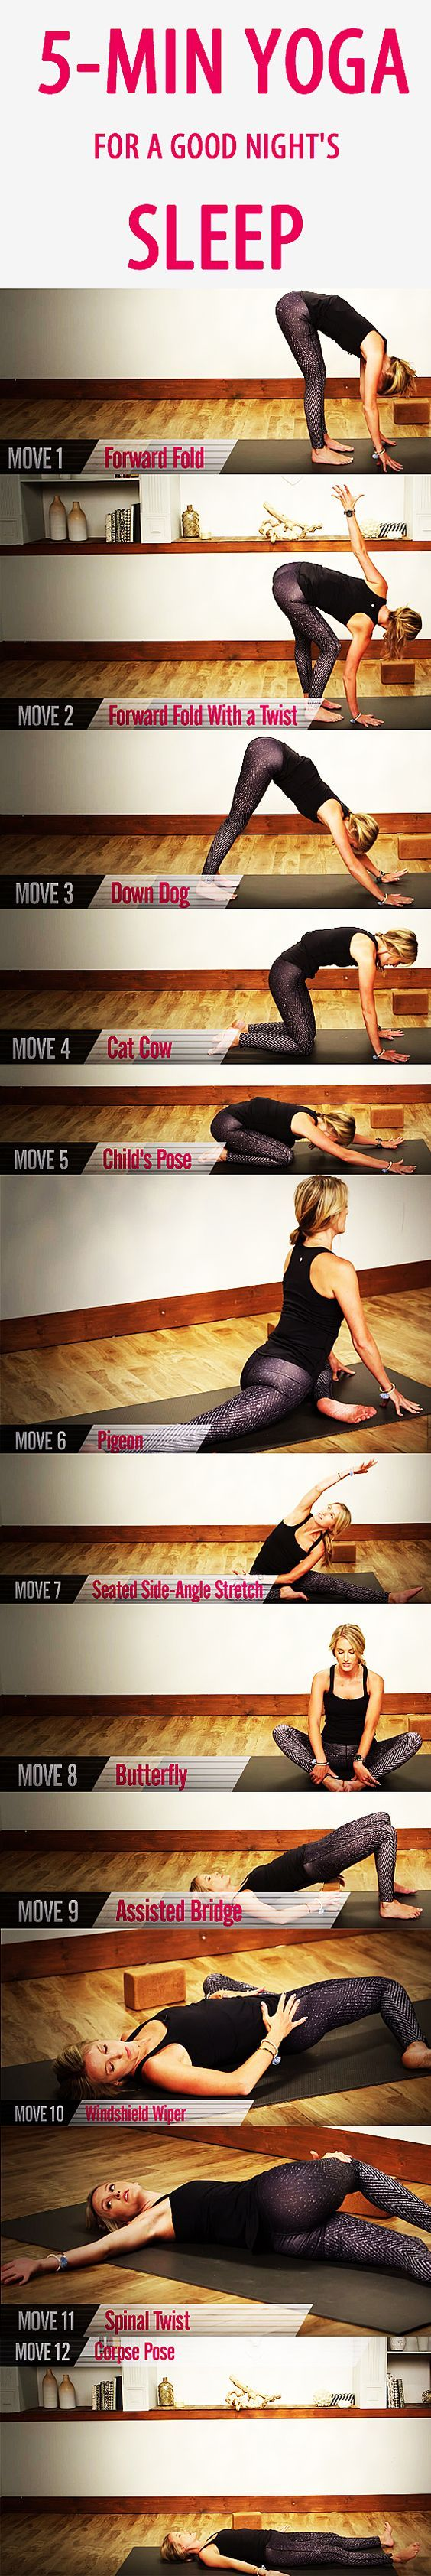 5 Minute Yoga Routine for a Good Night's Sleep.                                                                                                                                                     More